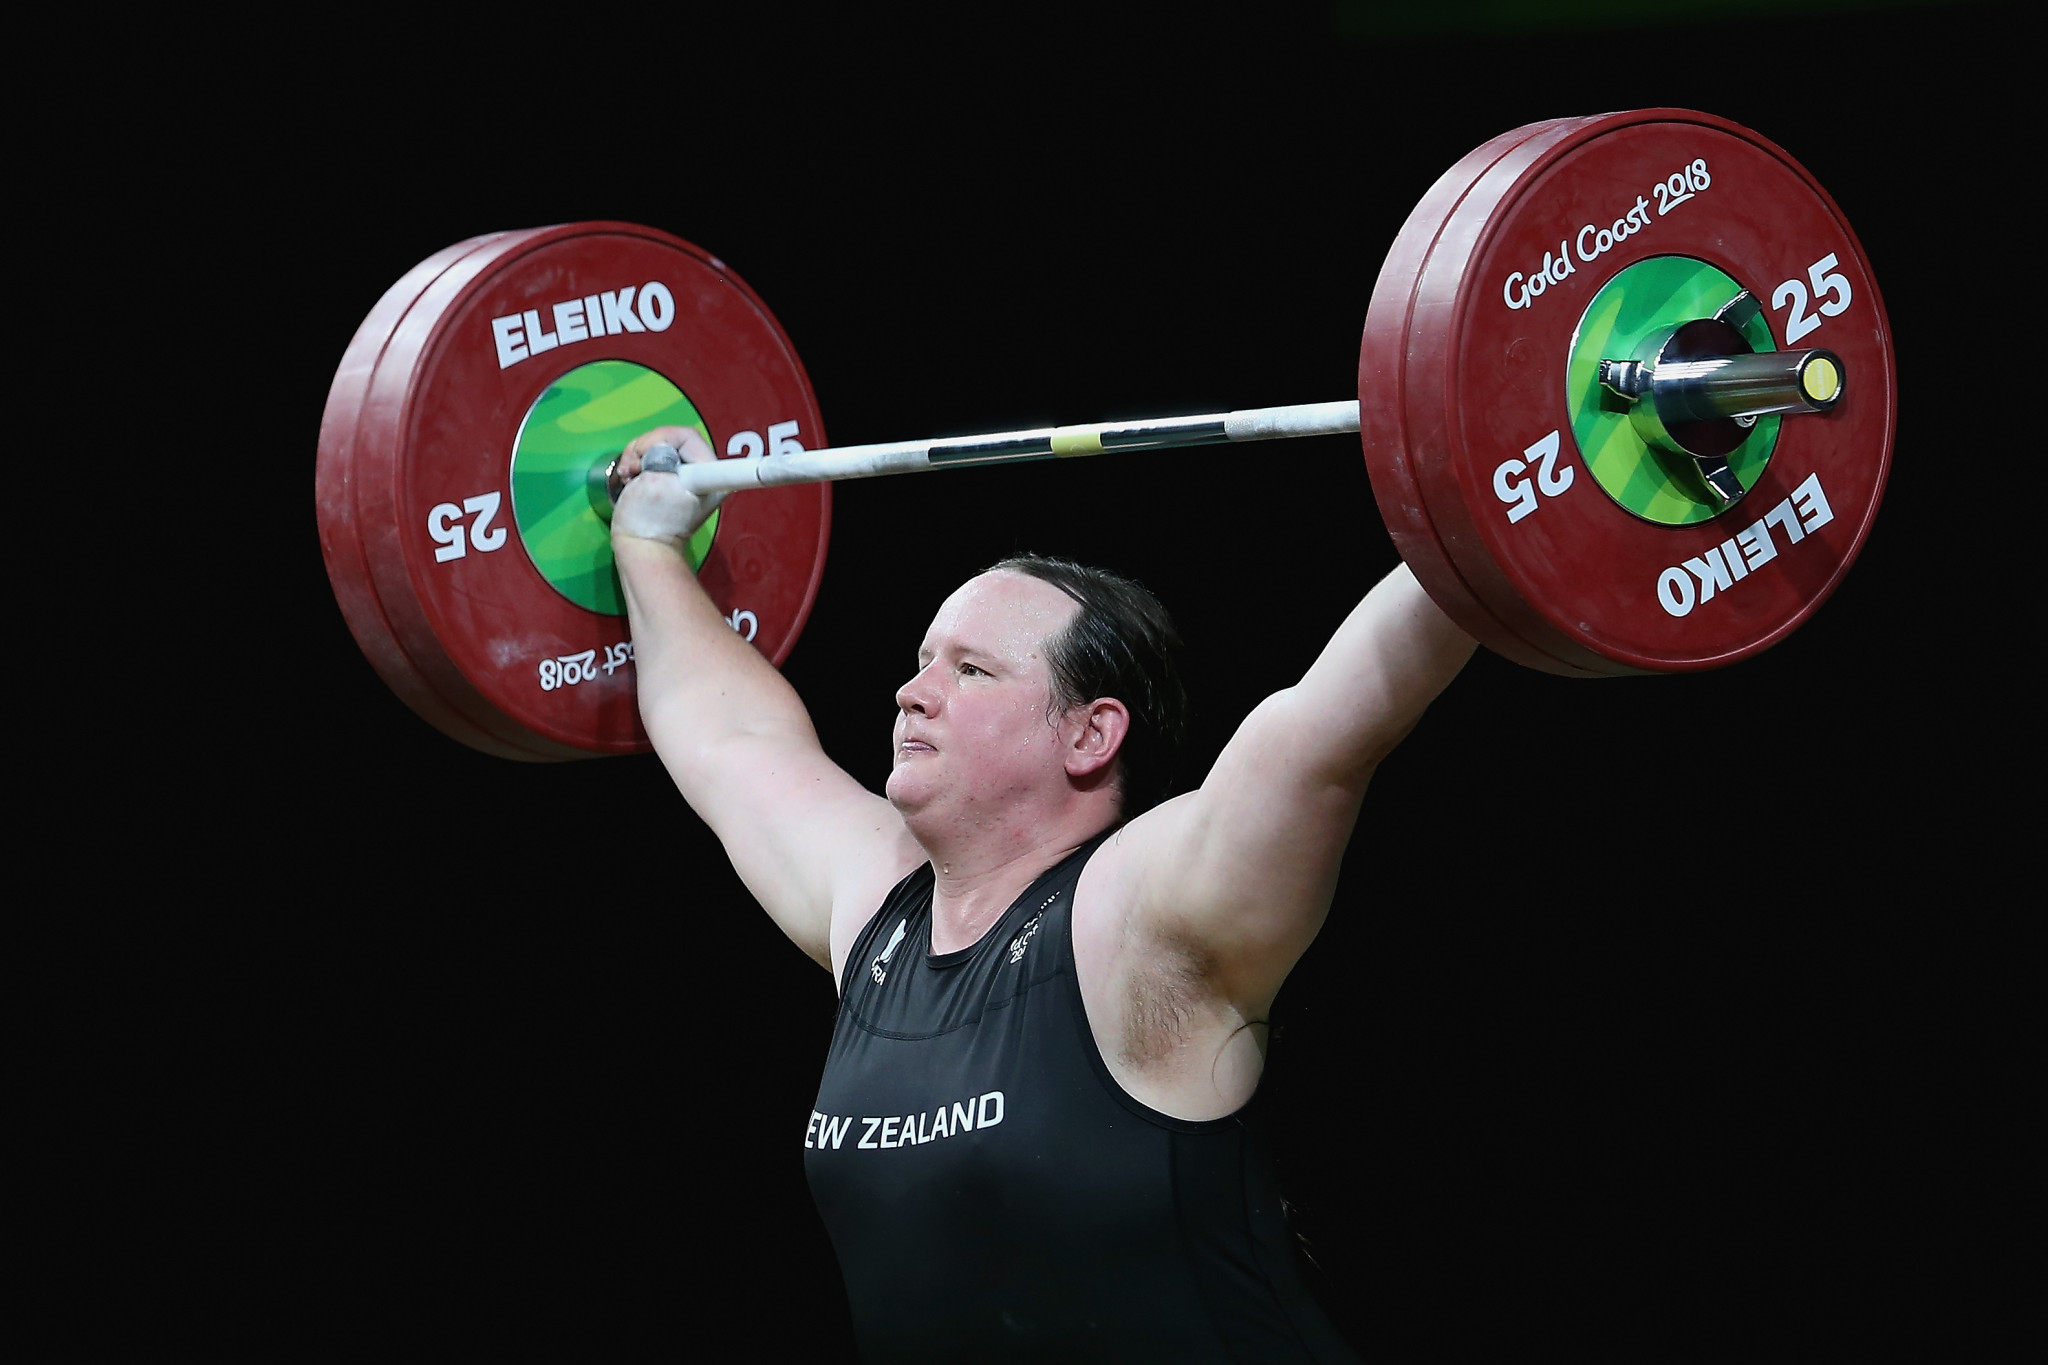 Weightlifter Laurel Hubbard, who suffered a serious elbow injury at the 2018 Commonwealth Games, has been effectively guaranteed a place at the delayed Tokyo 2020 Olympics after a revised qualification process was approved ©Getty Images